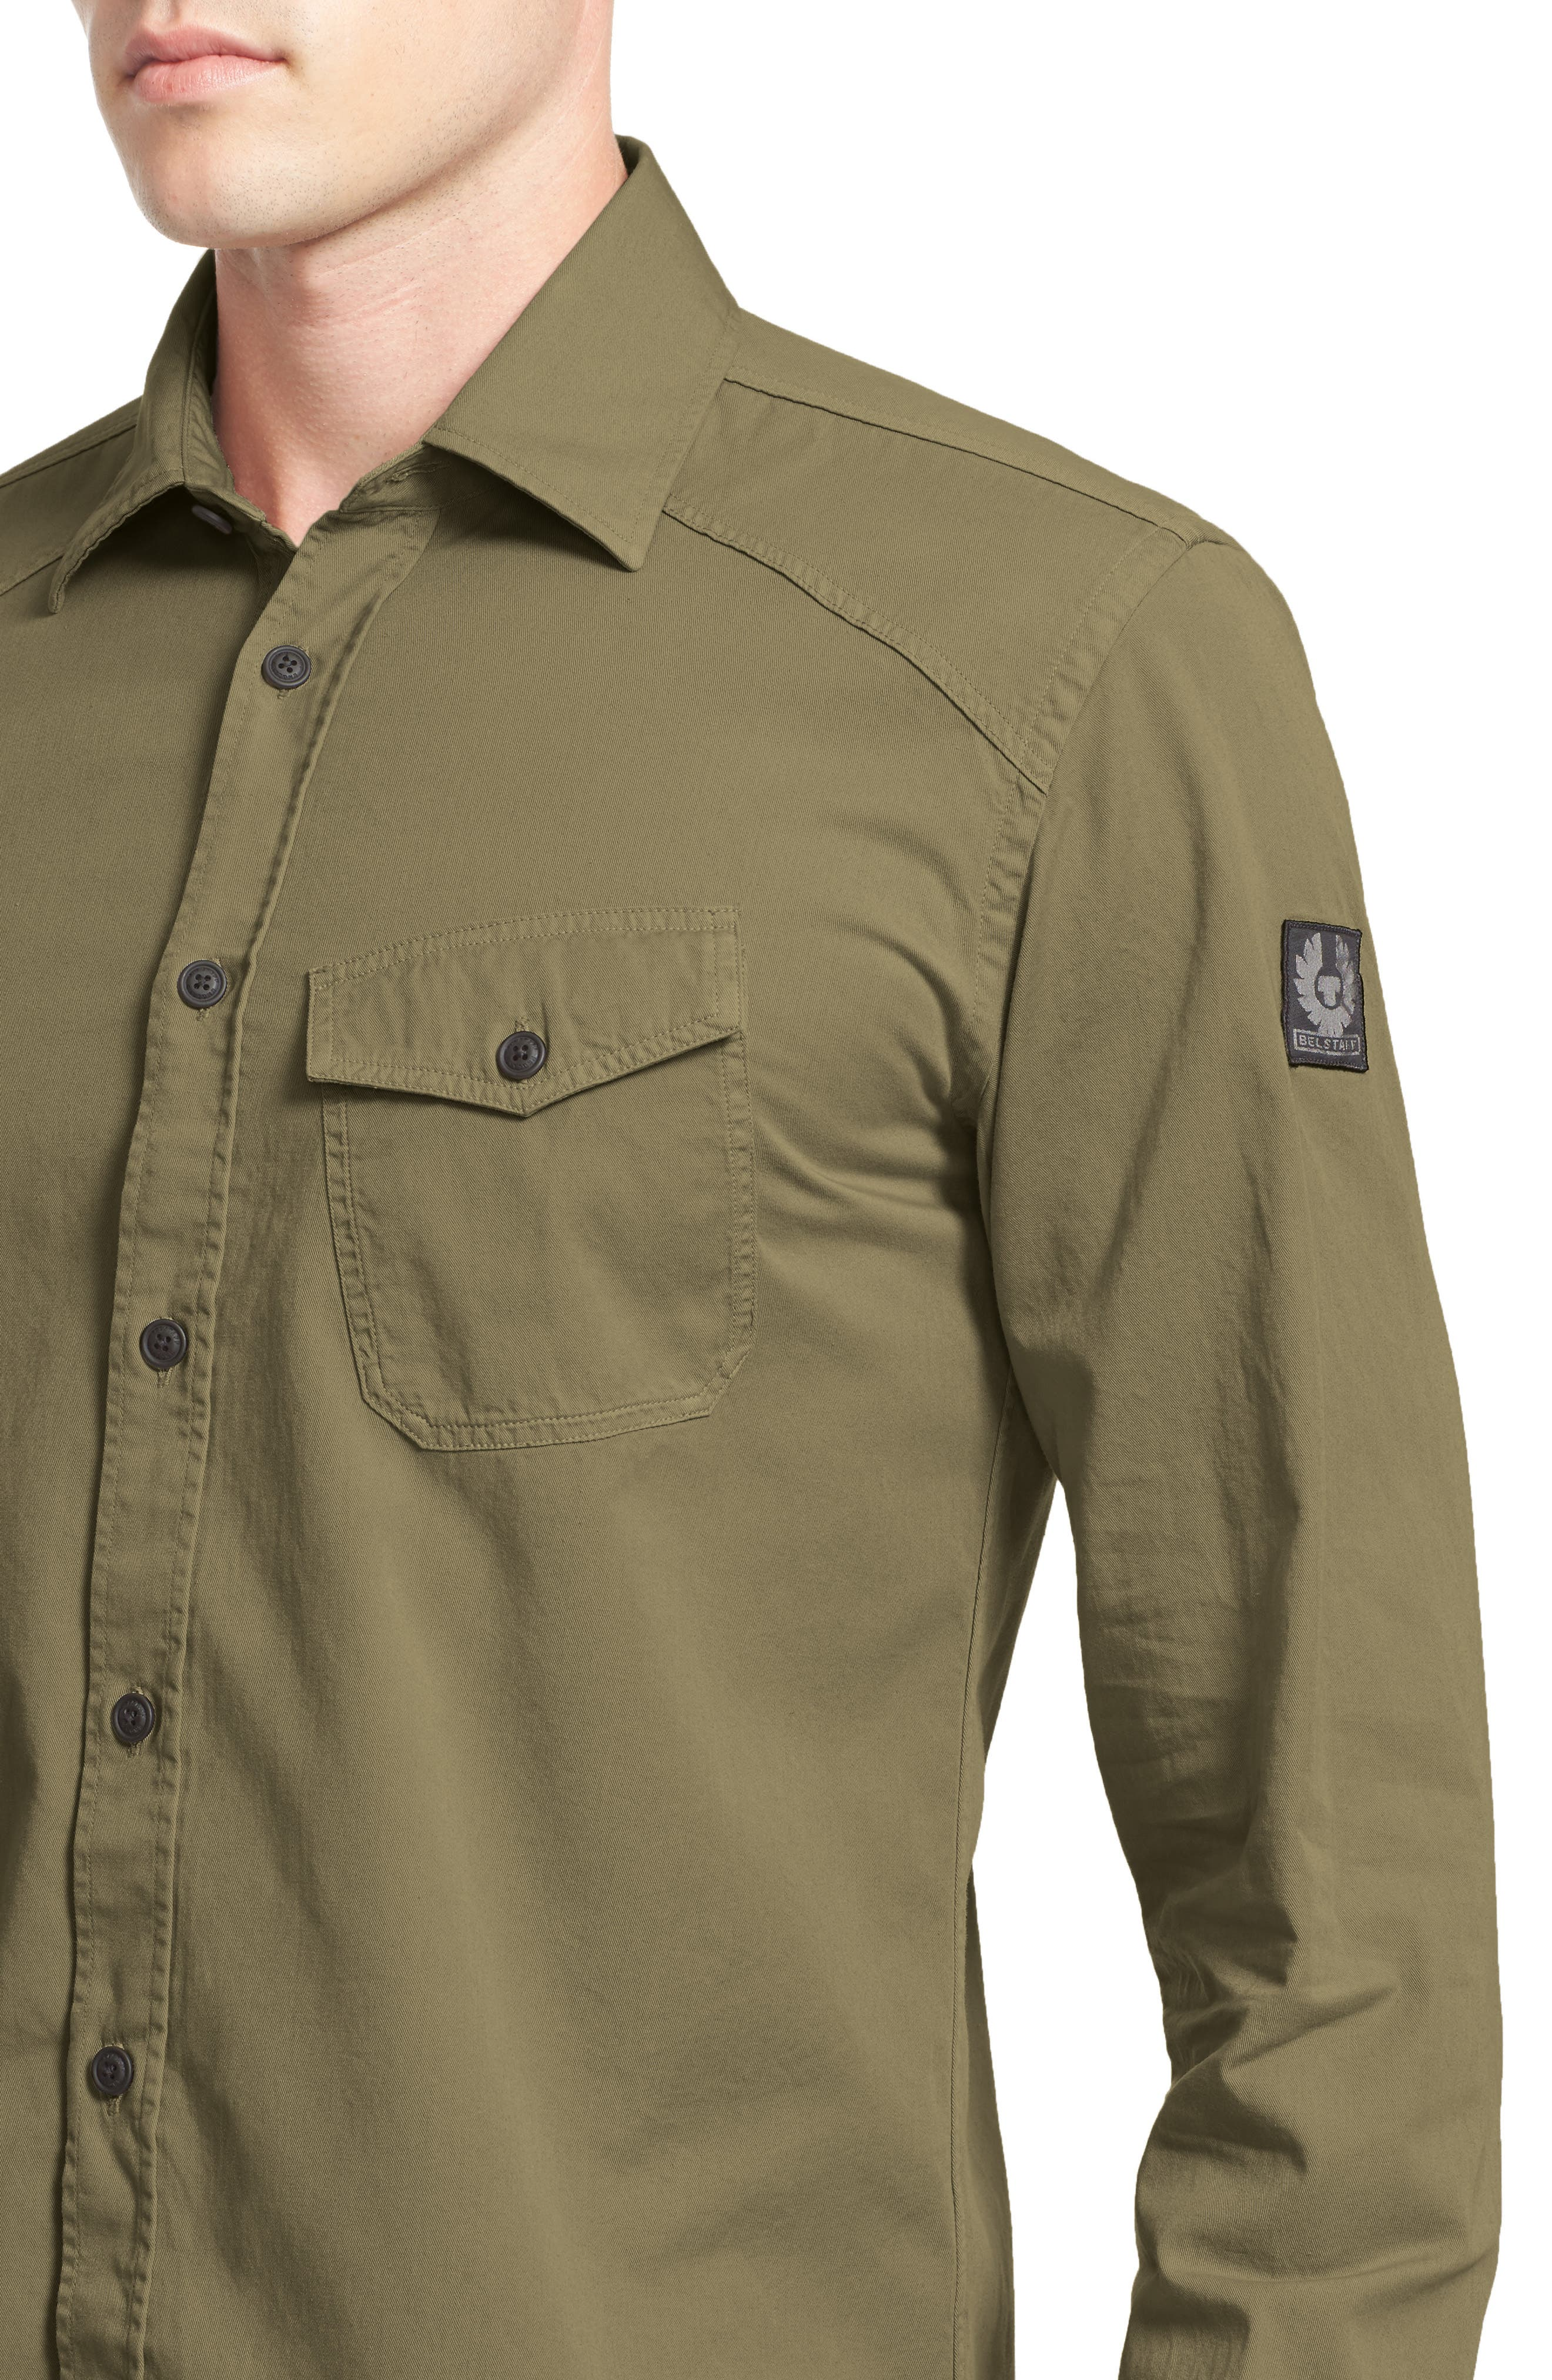 Steadway Woven Shirt,                             Alternate thumbnail 4, color,                             312